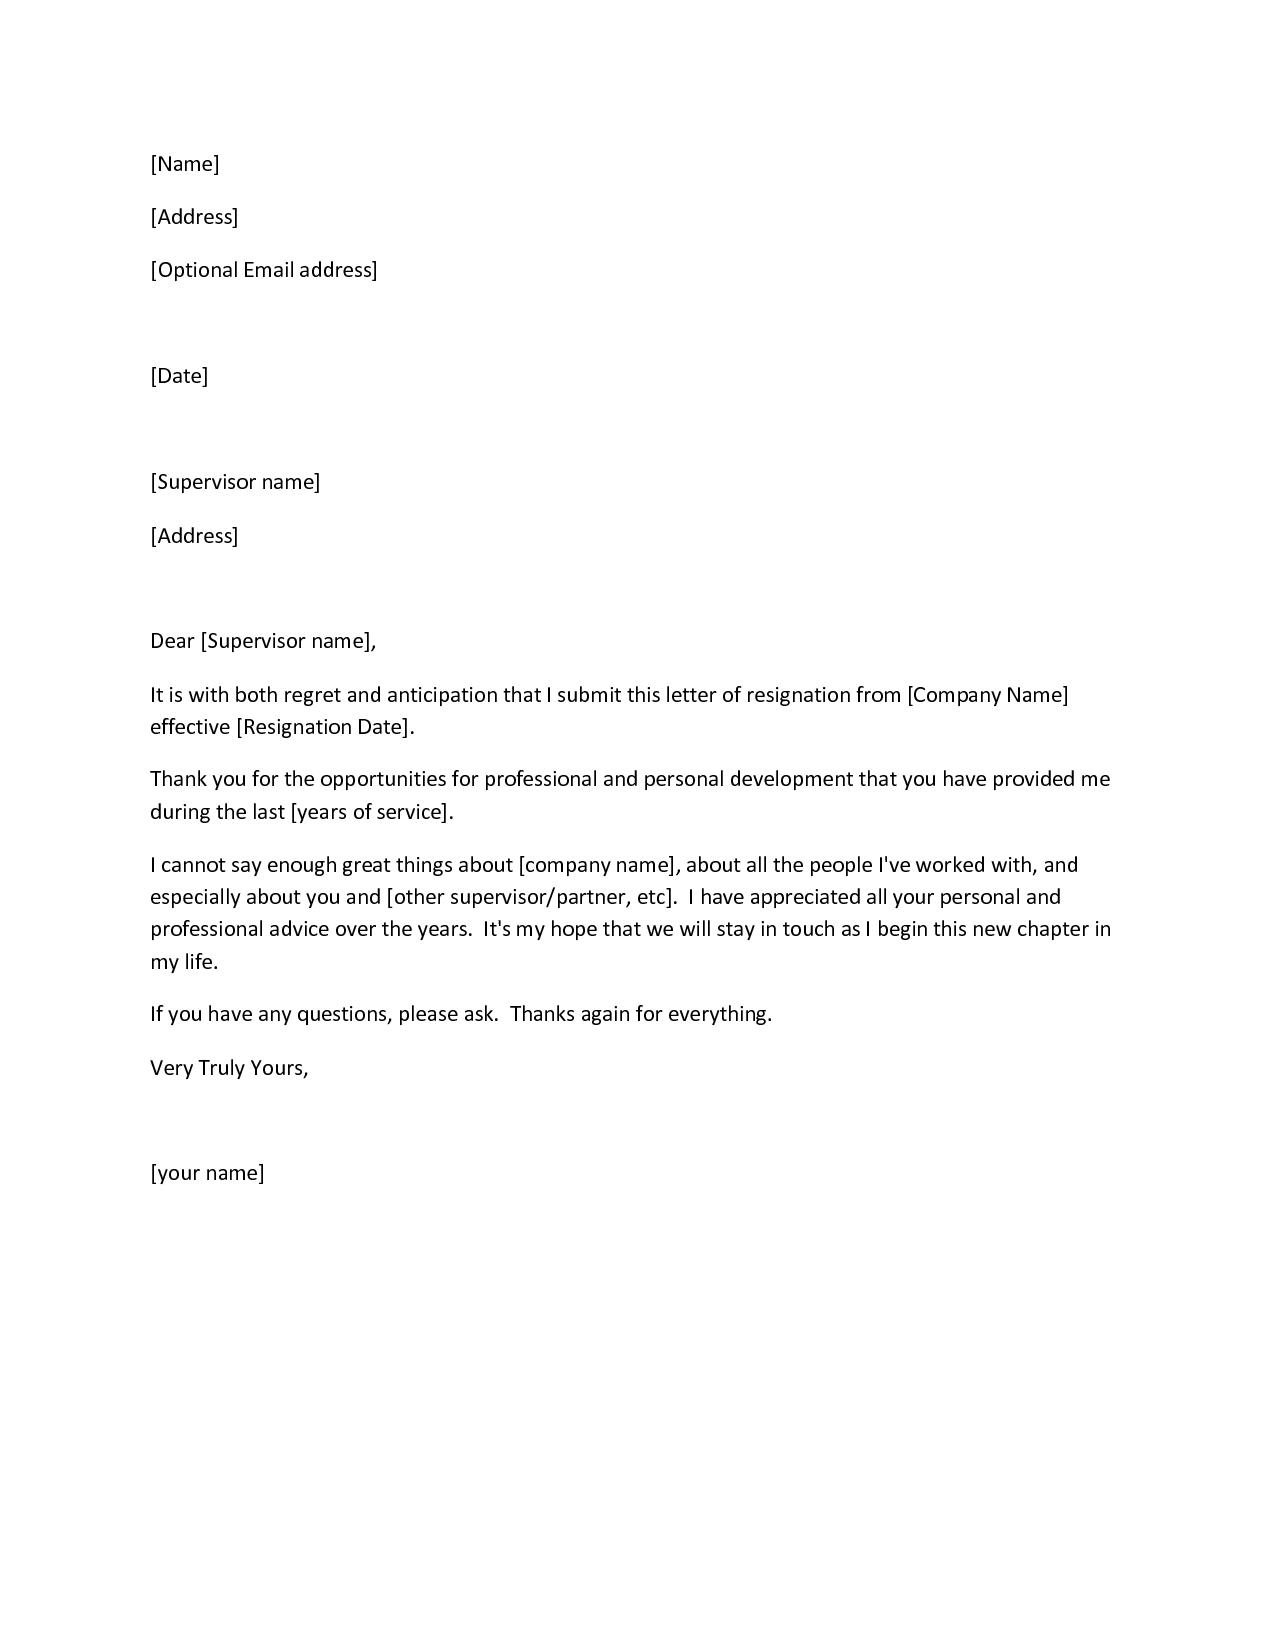 Formal resignation letter example official letter of resignation formal resignation letter example official letter of resignation examples of letters of resignation spiritdancerdesigns Image collections